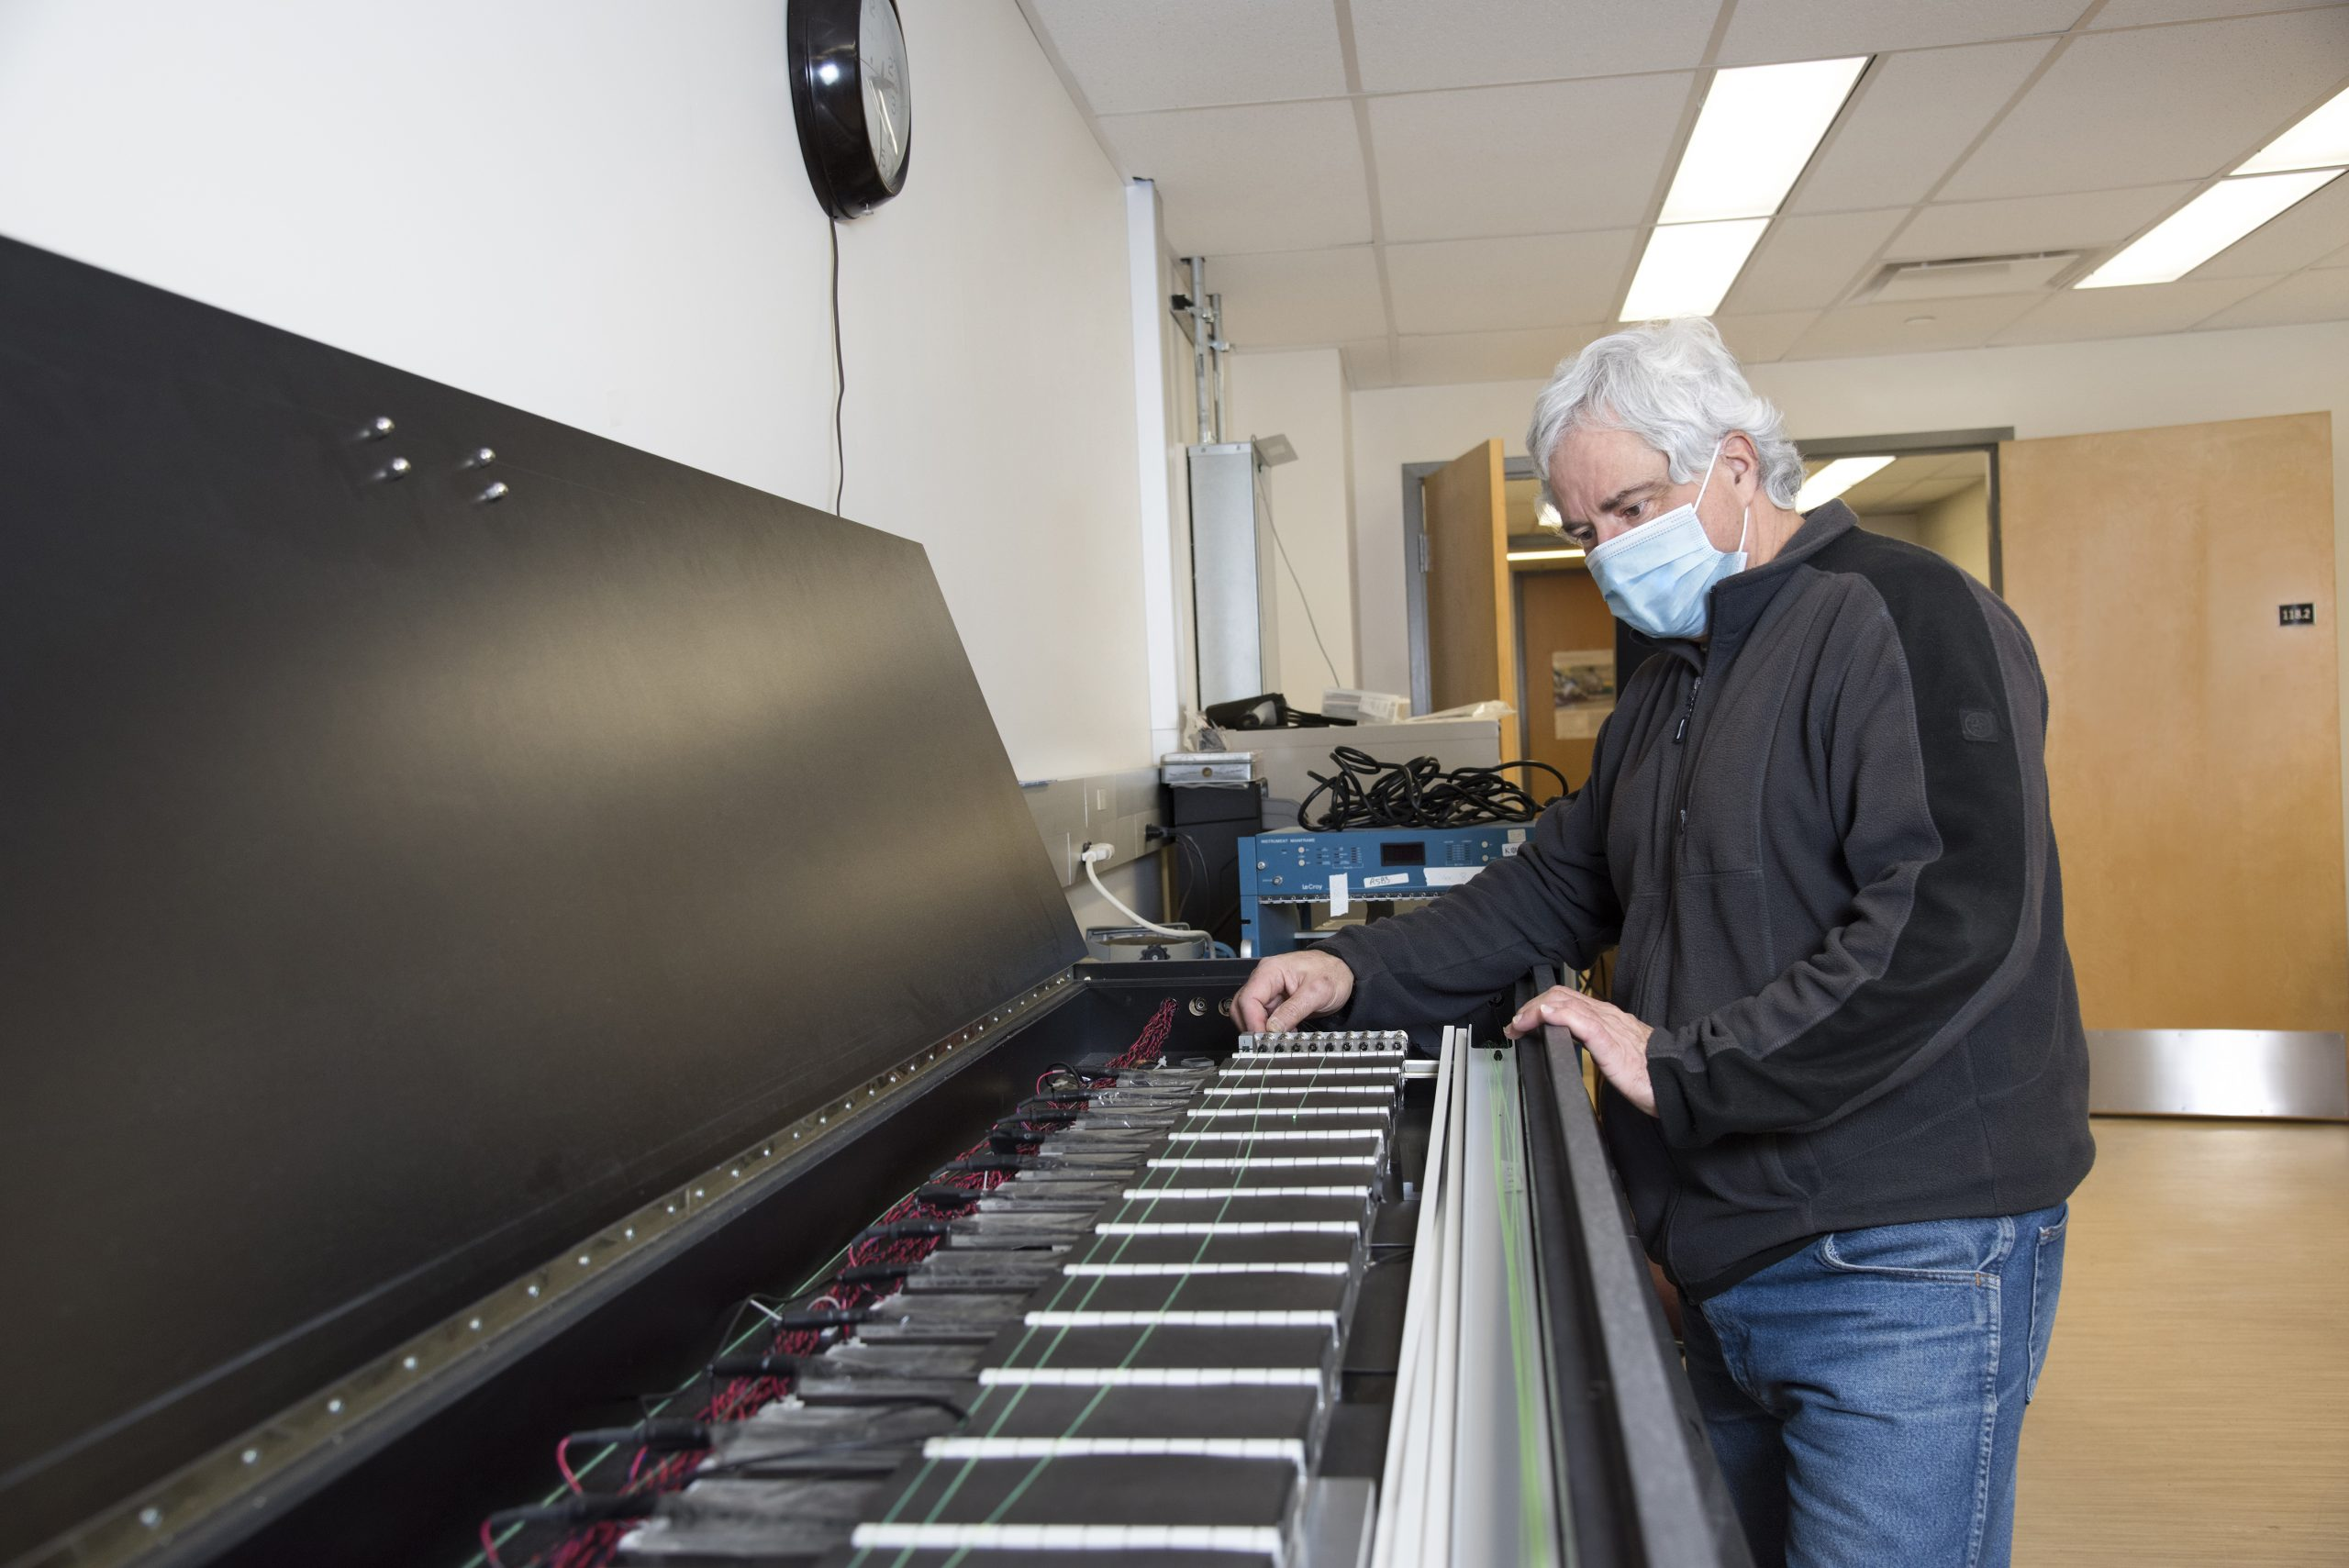 Physicist Dr. Mauricio Barbi in his U of R research and development lab where he and his team are developing components for the Hyper-K project. (Photo by Rae Graham)